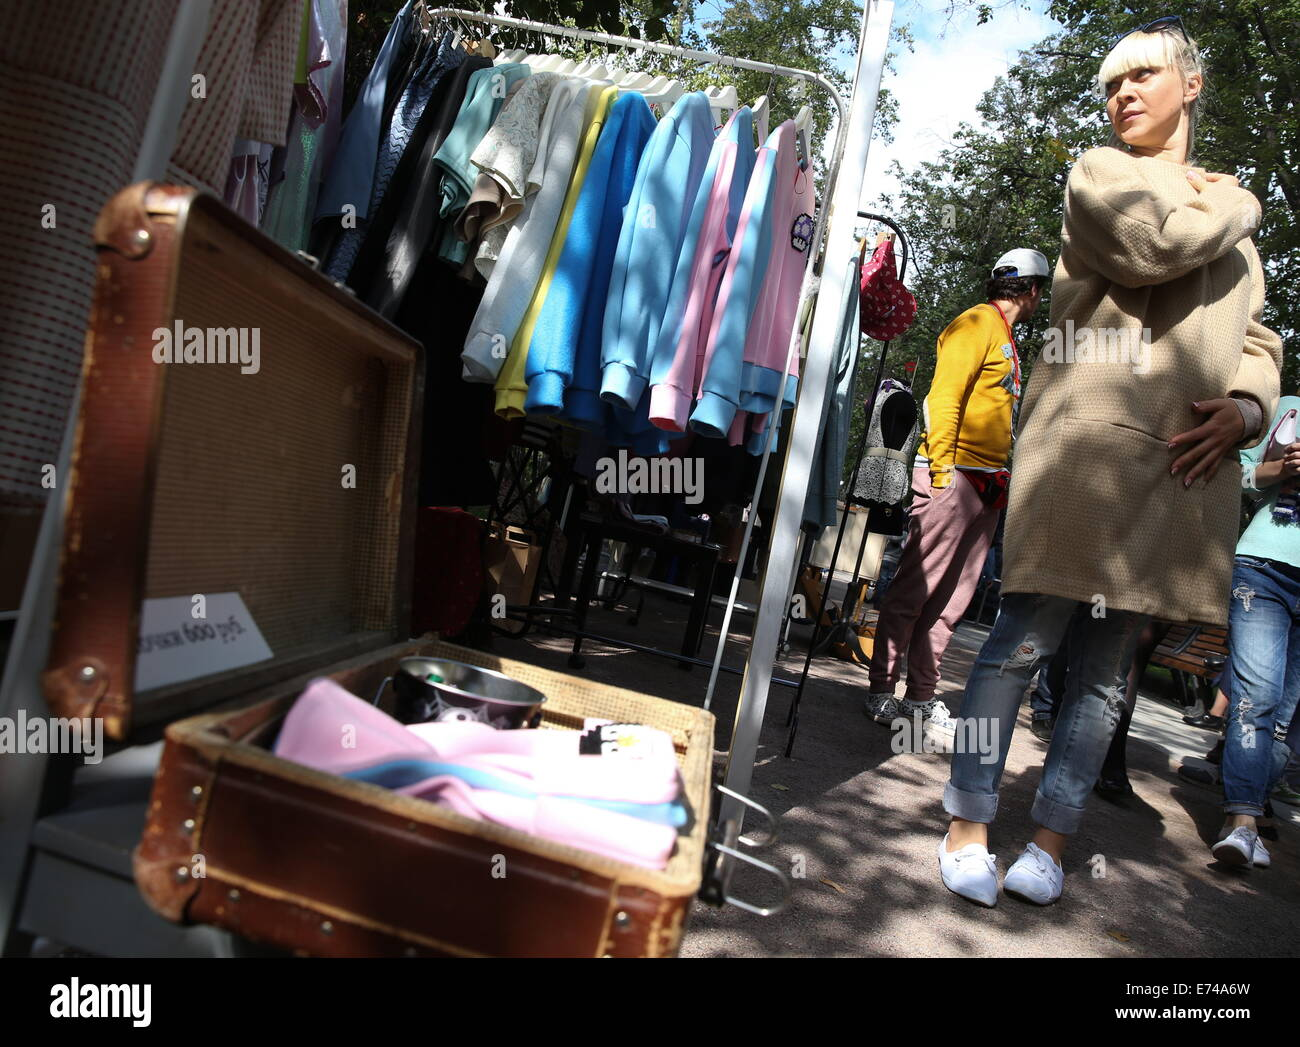 ITAR-TASS: MOSCOW, RUSSIA. SEPTEMBER 6, 2014. Clothes for sale at the Lambada market in Moscow's Pokrovsky Boulevard. Stock Photo